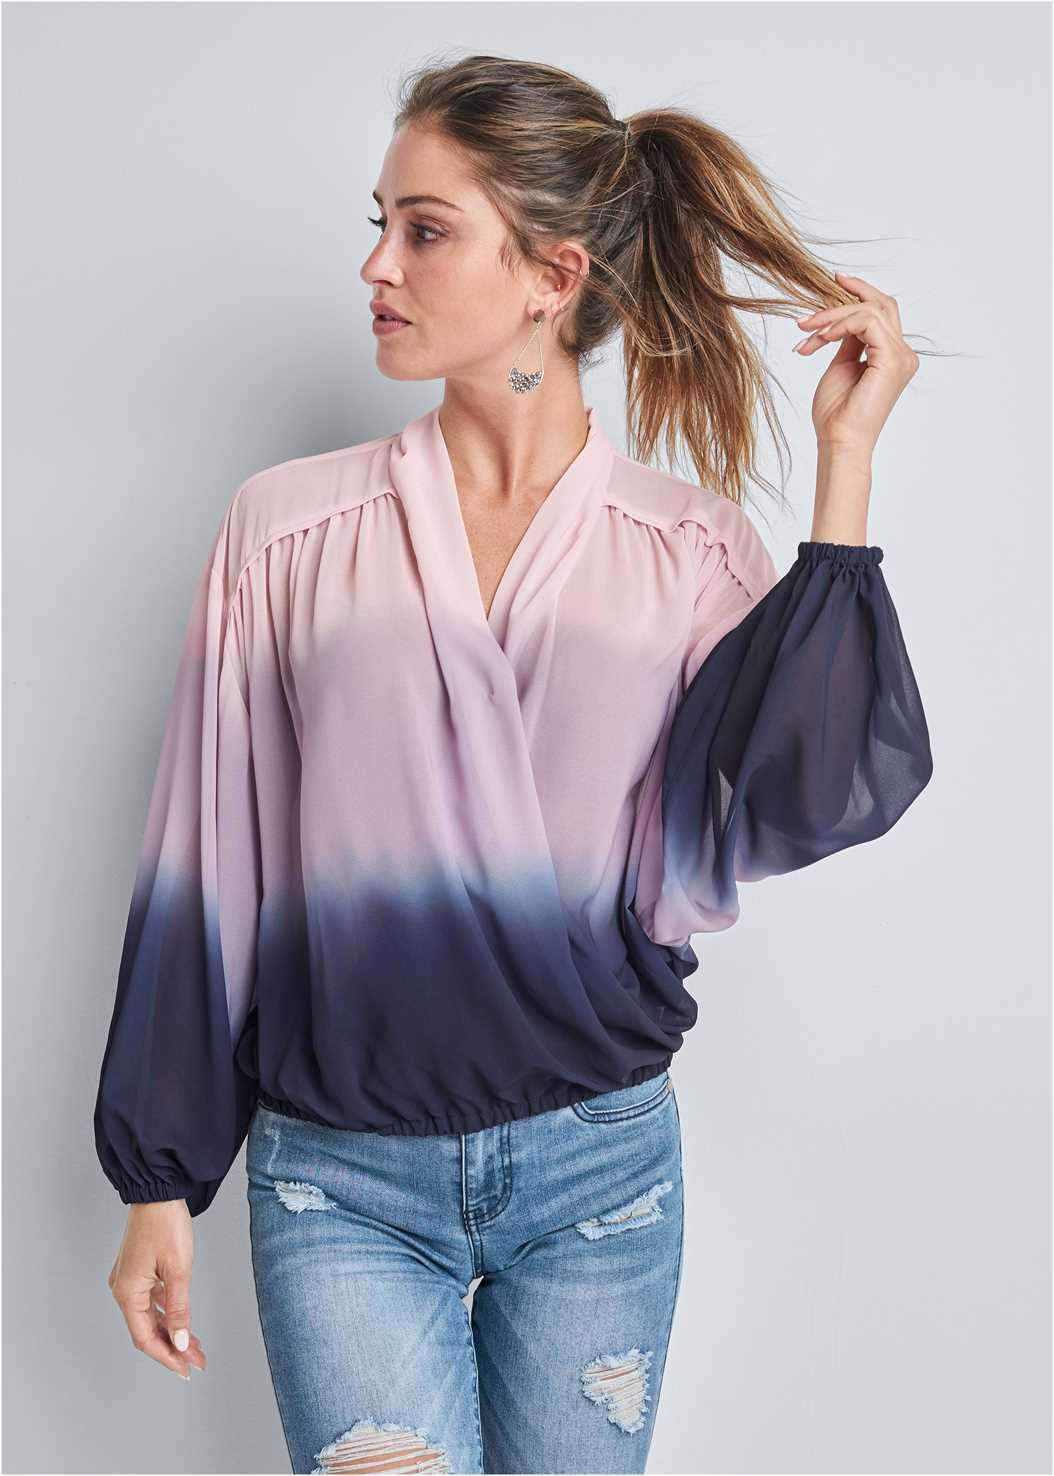 Ombre Casual Top,Triangle Hem Jeans,Square Toe Thong Heel Sandal